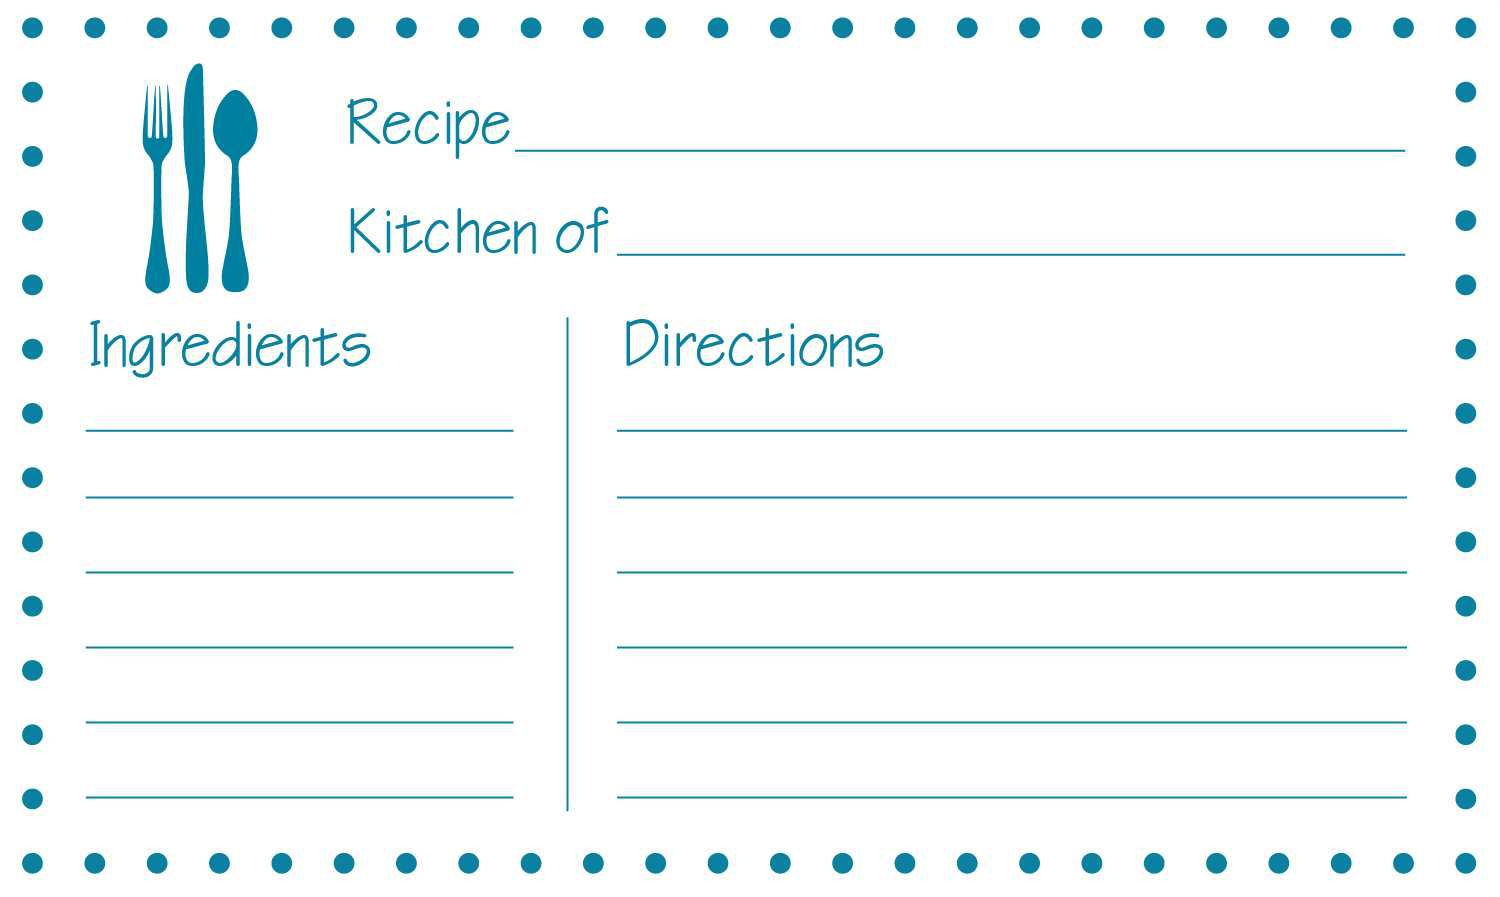 002 Stupendou Editable Recipe Card Template Highest Quality  Free For Microsoft Word 4x6 PageFull